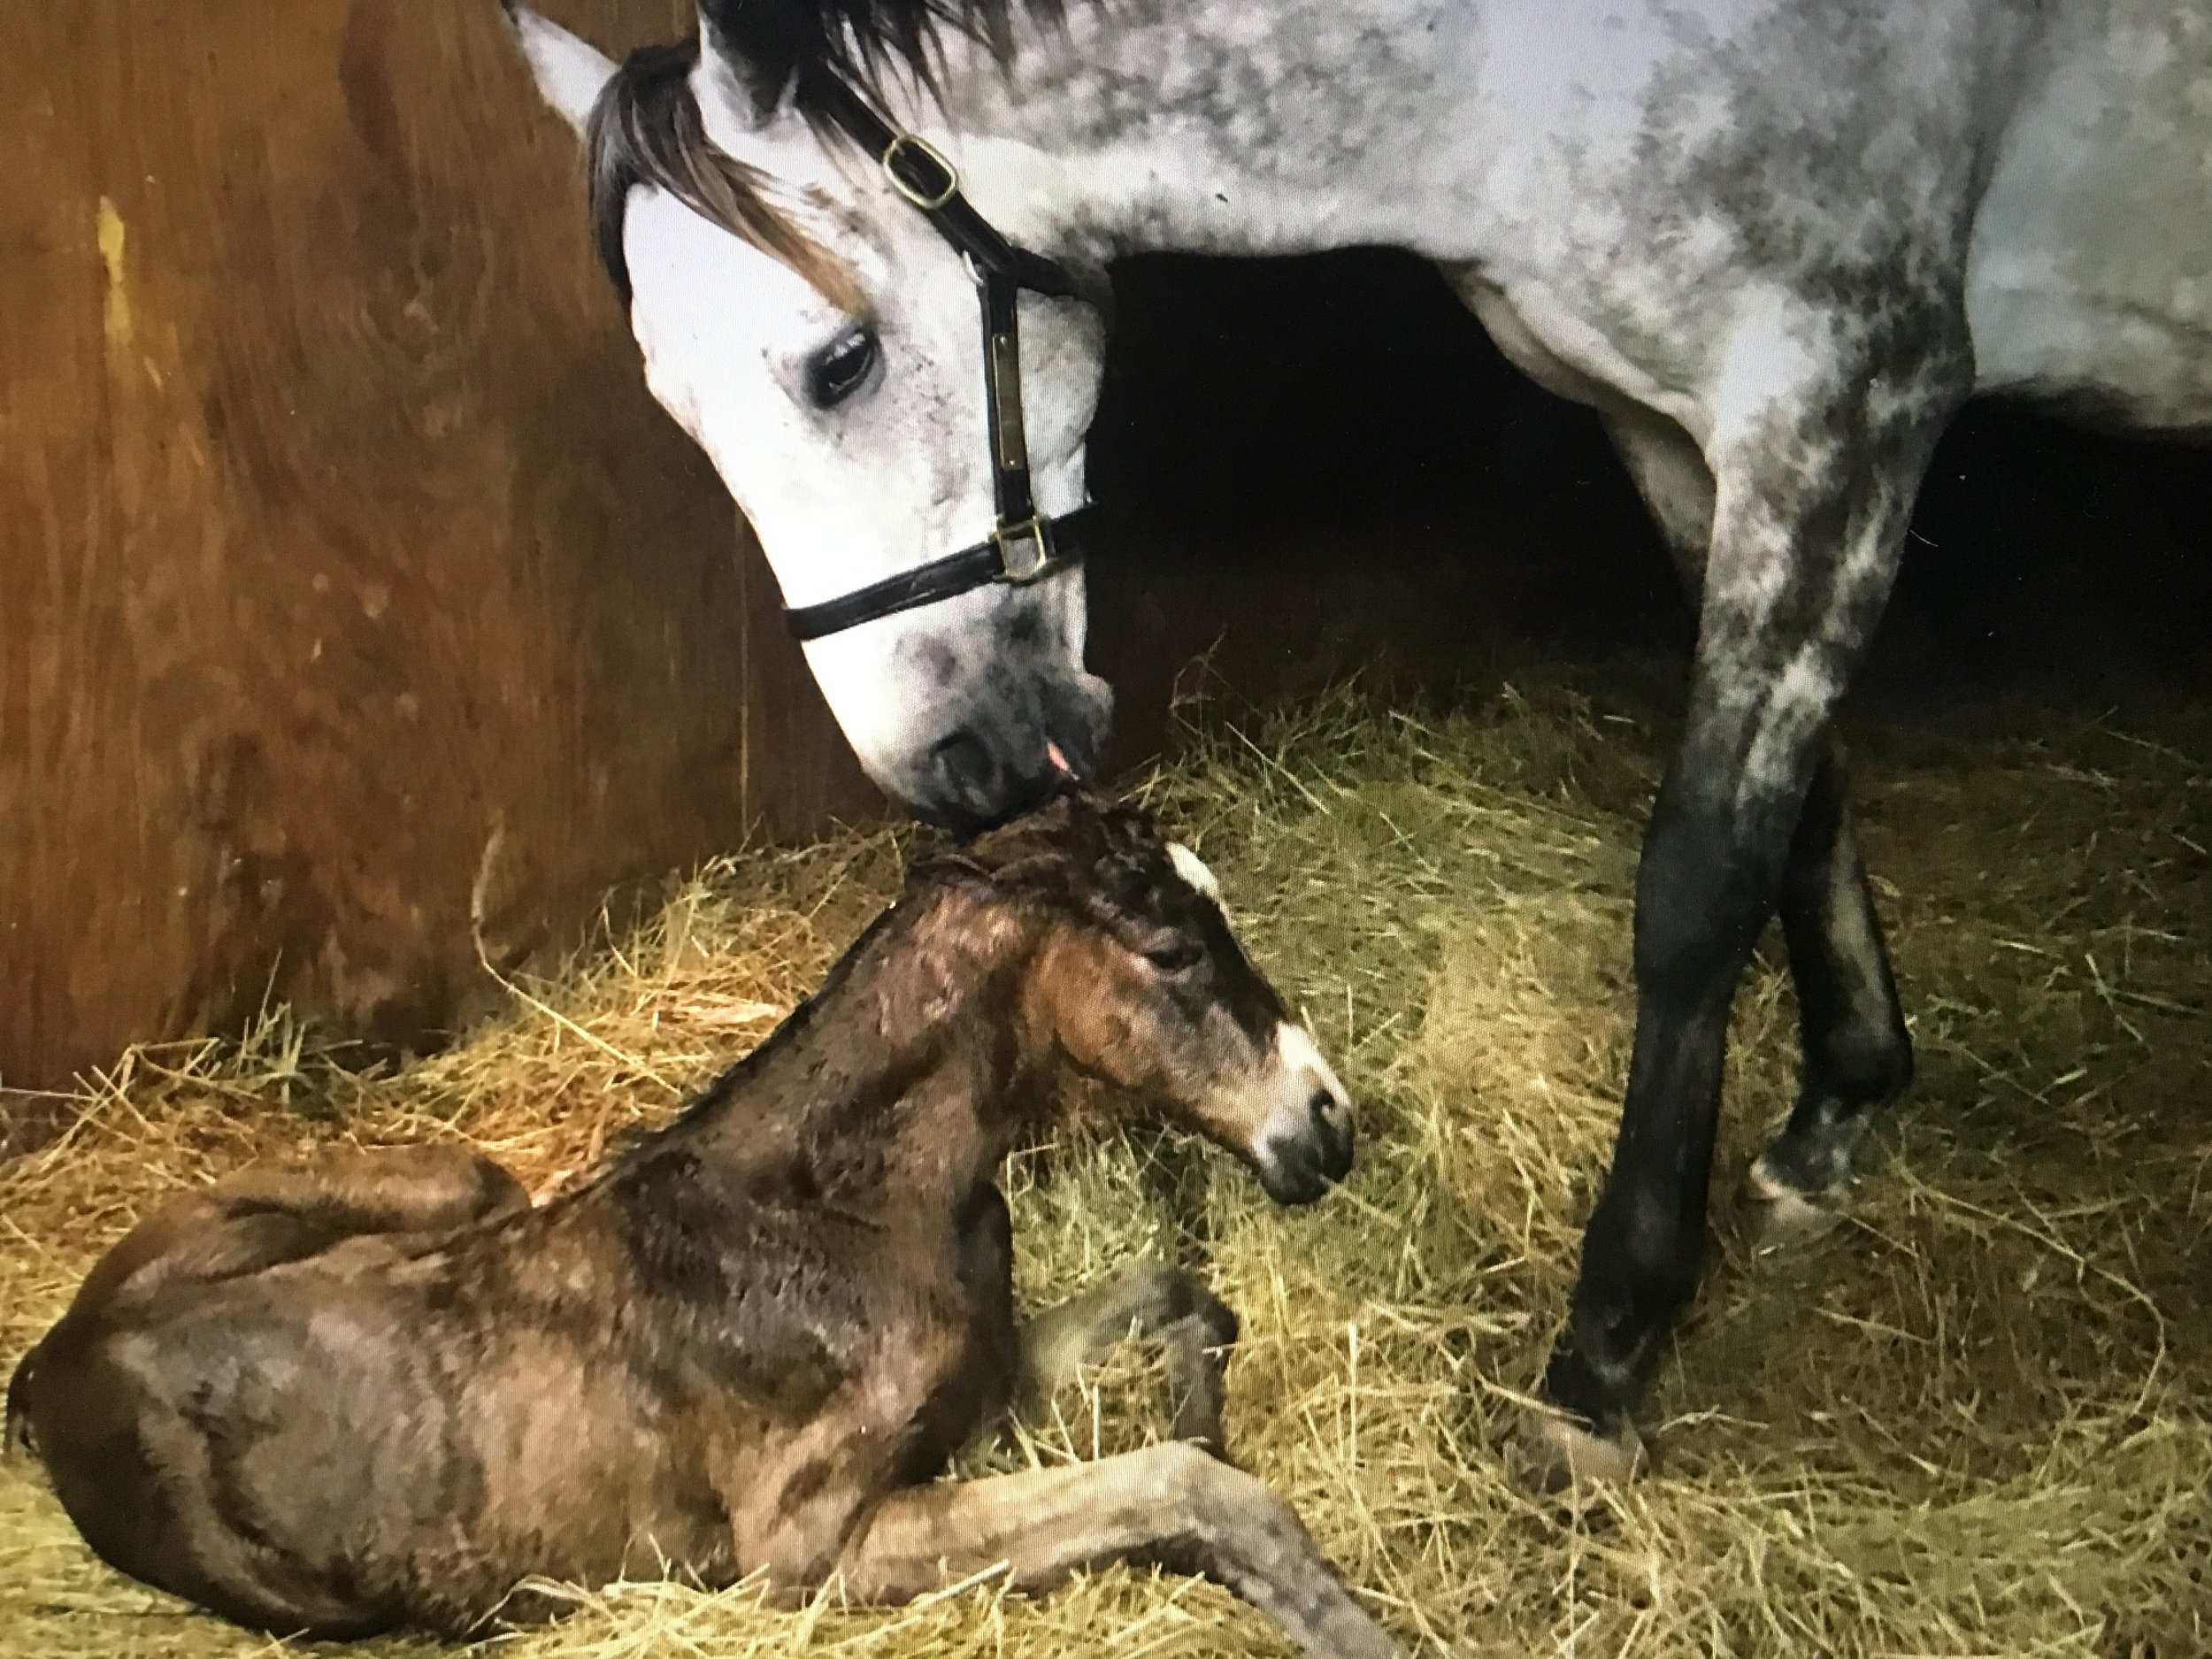 Capella Dancer and 2017 filly by Mr. Speaker at Rose Hill Farm.  Photo credit: Tony O'Campo at Rose Hill Farm.